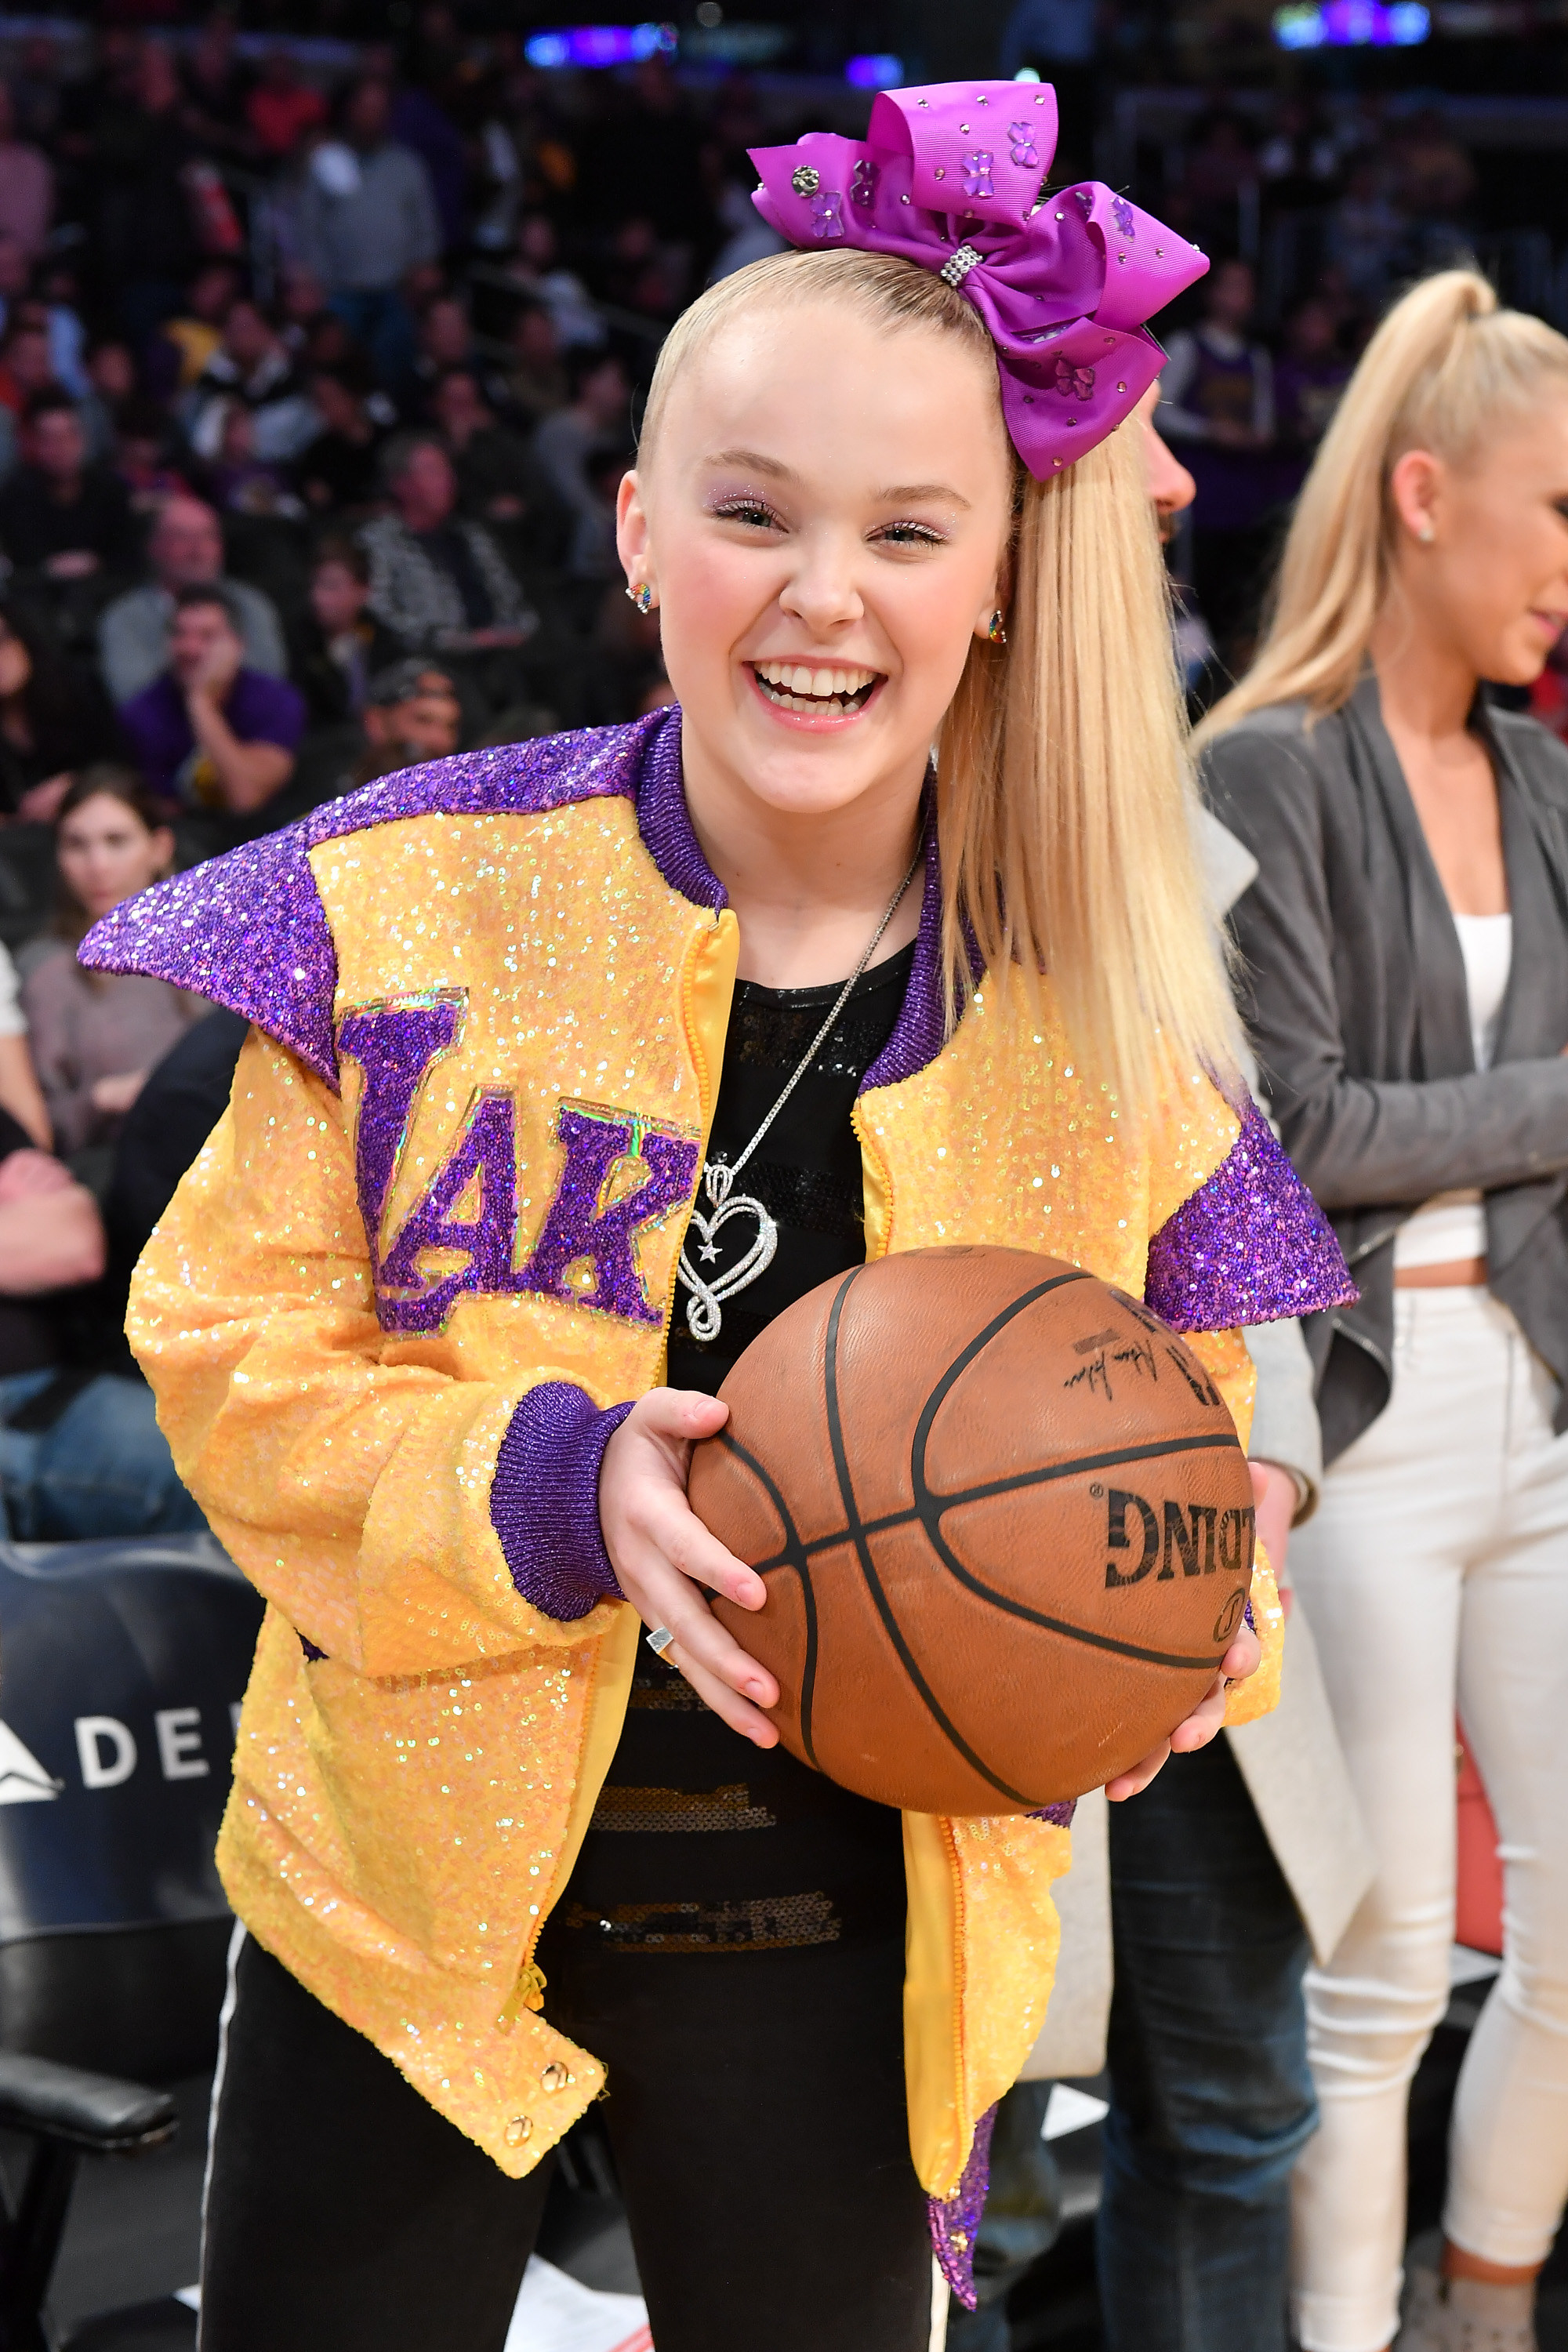 JoJo holding a basketball at a basketball game and wearing a glittered Lakers jacket